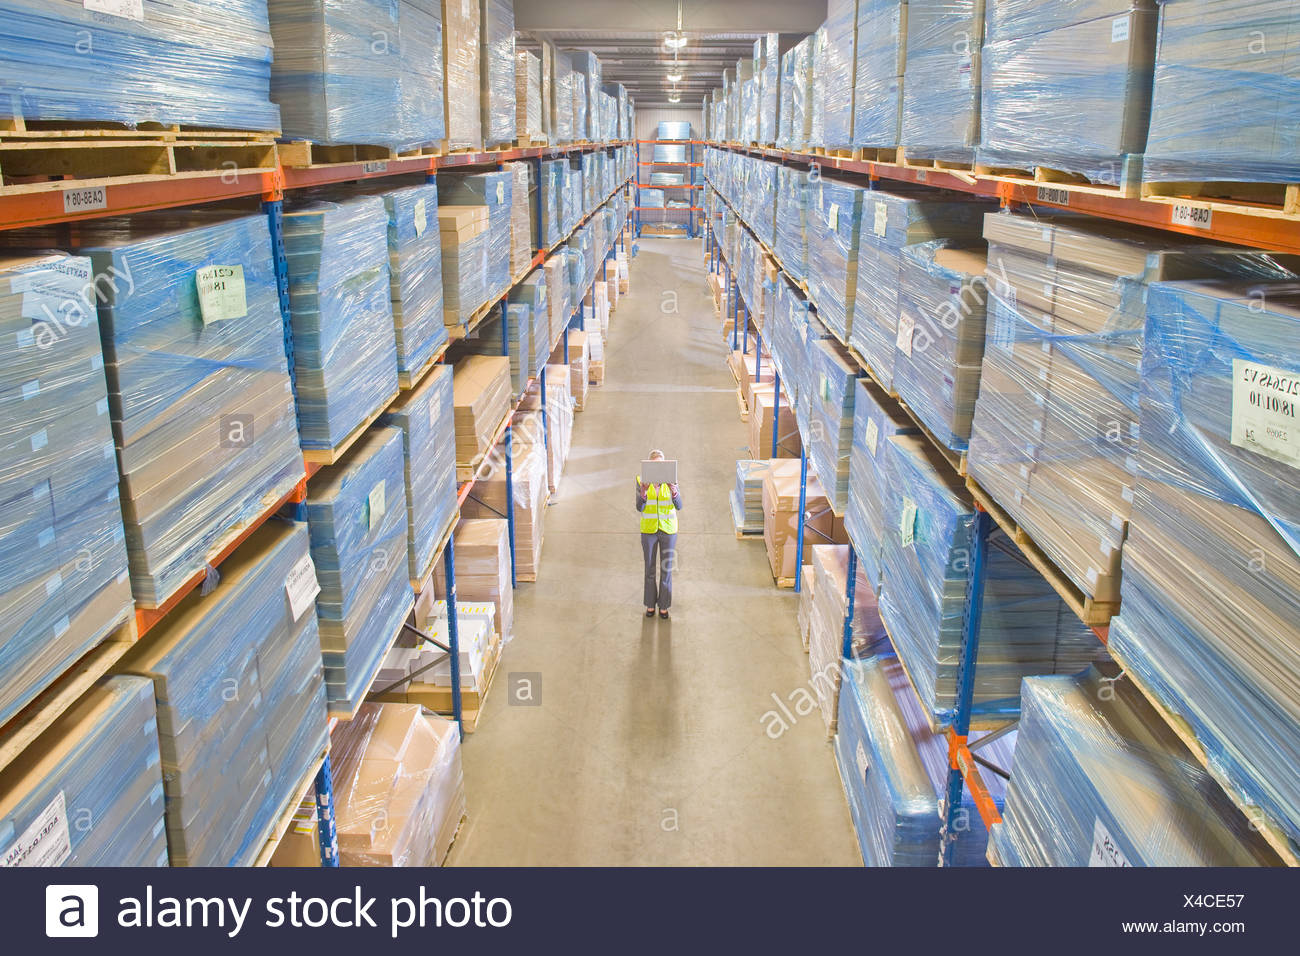 Warehouse manager holding laptop in aisle - Stock Image